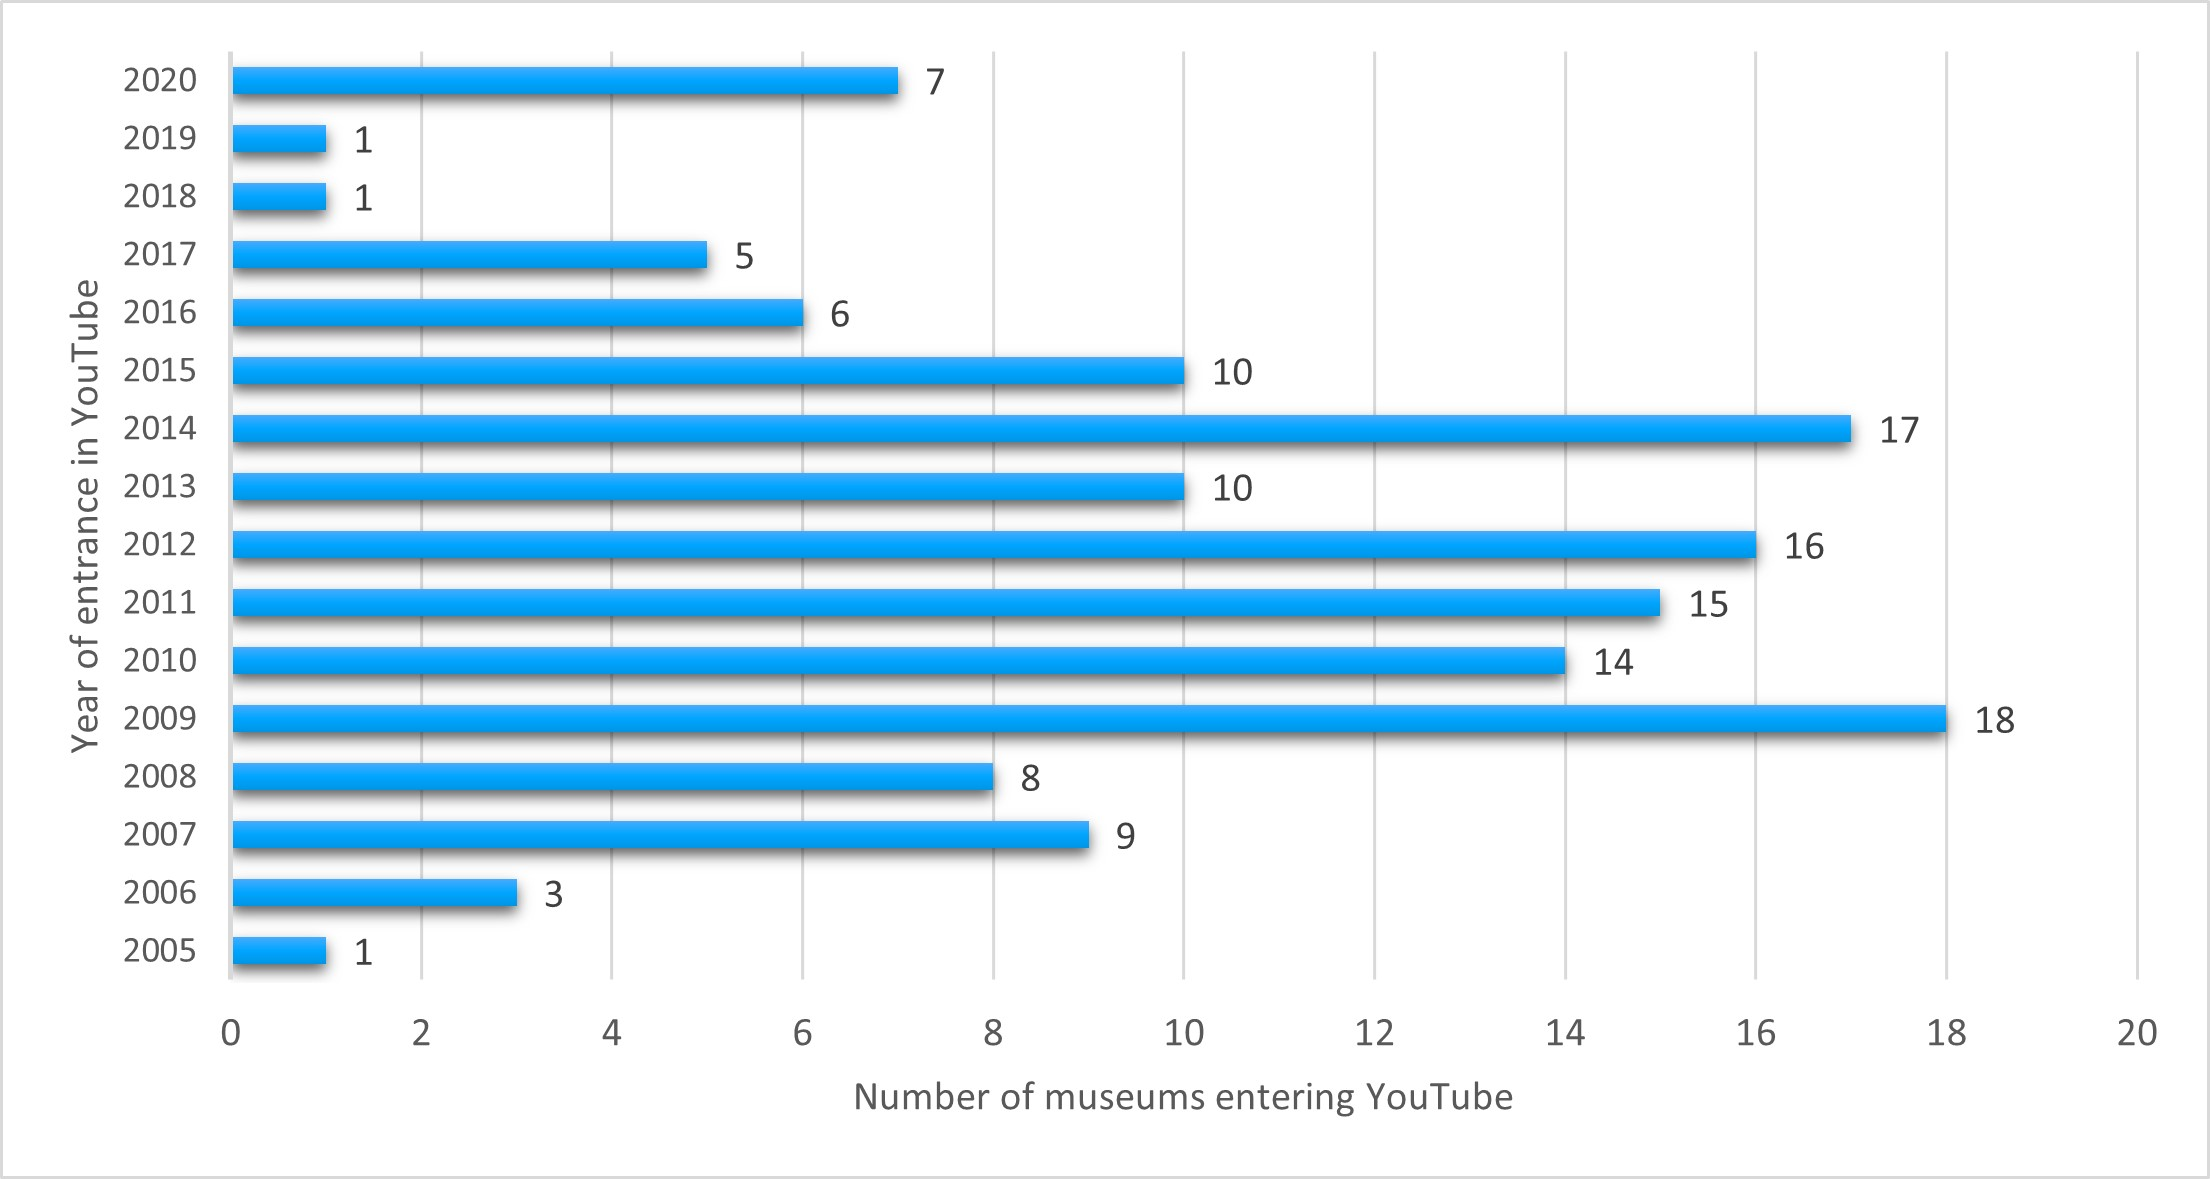 Museums on YouTube per year of opening a YouTube account